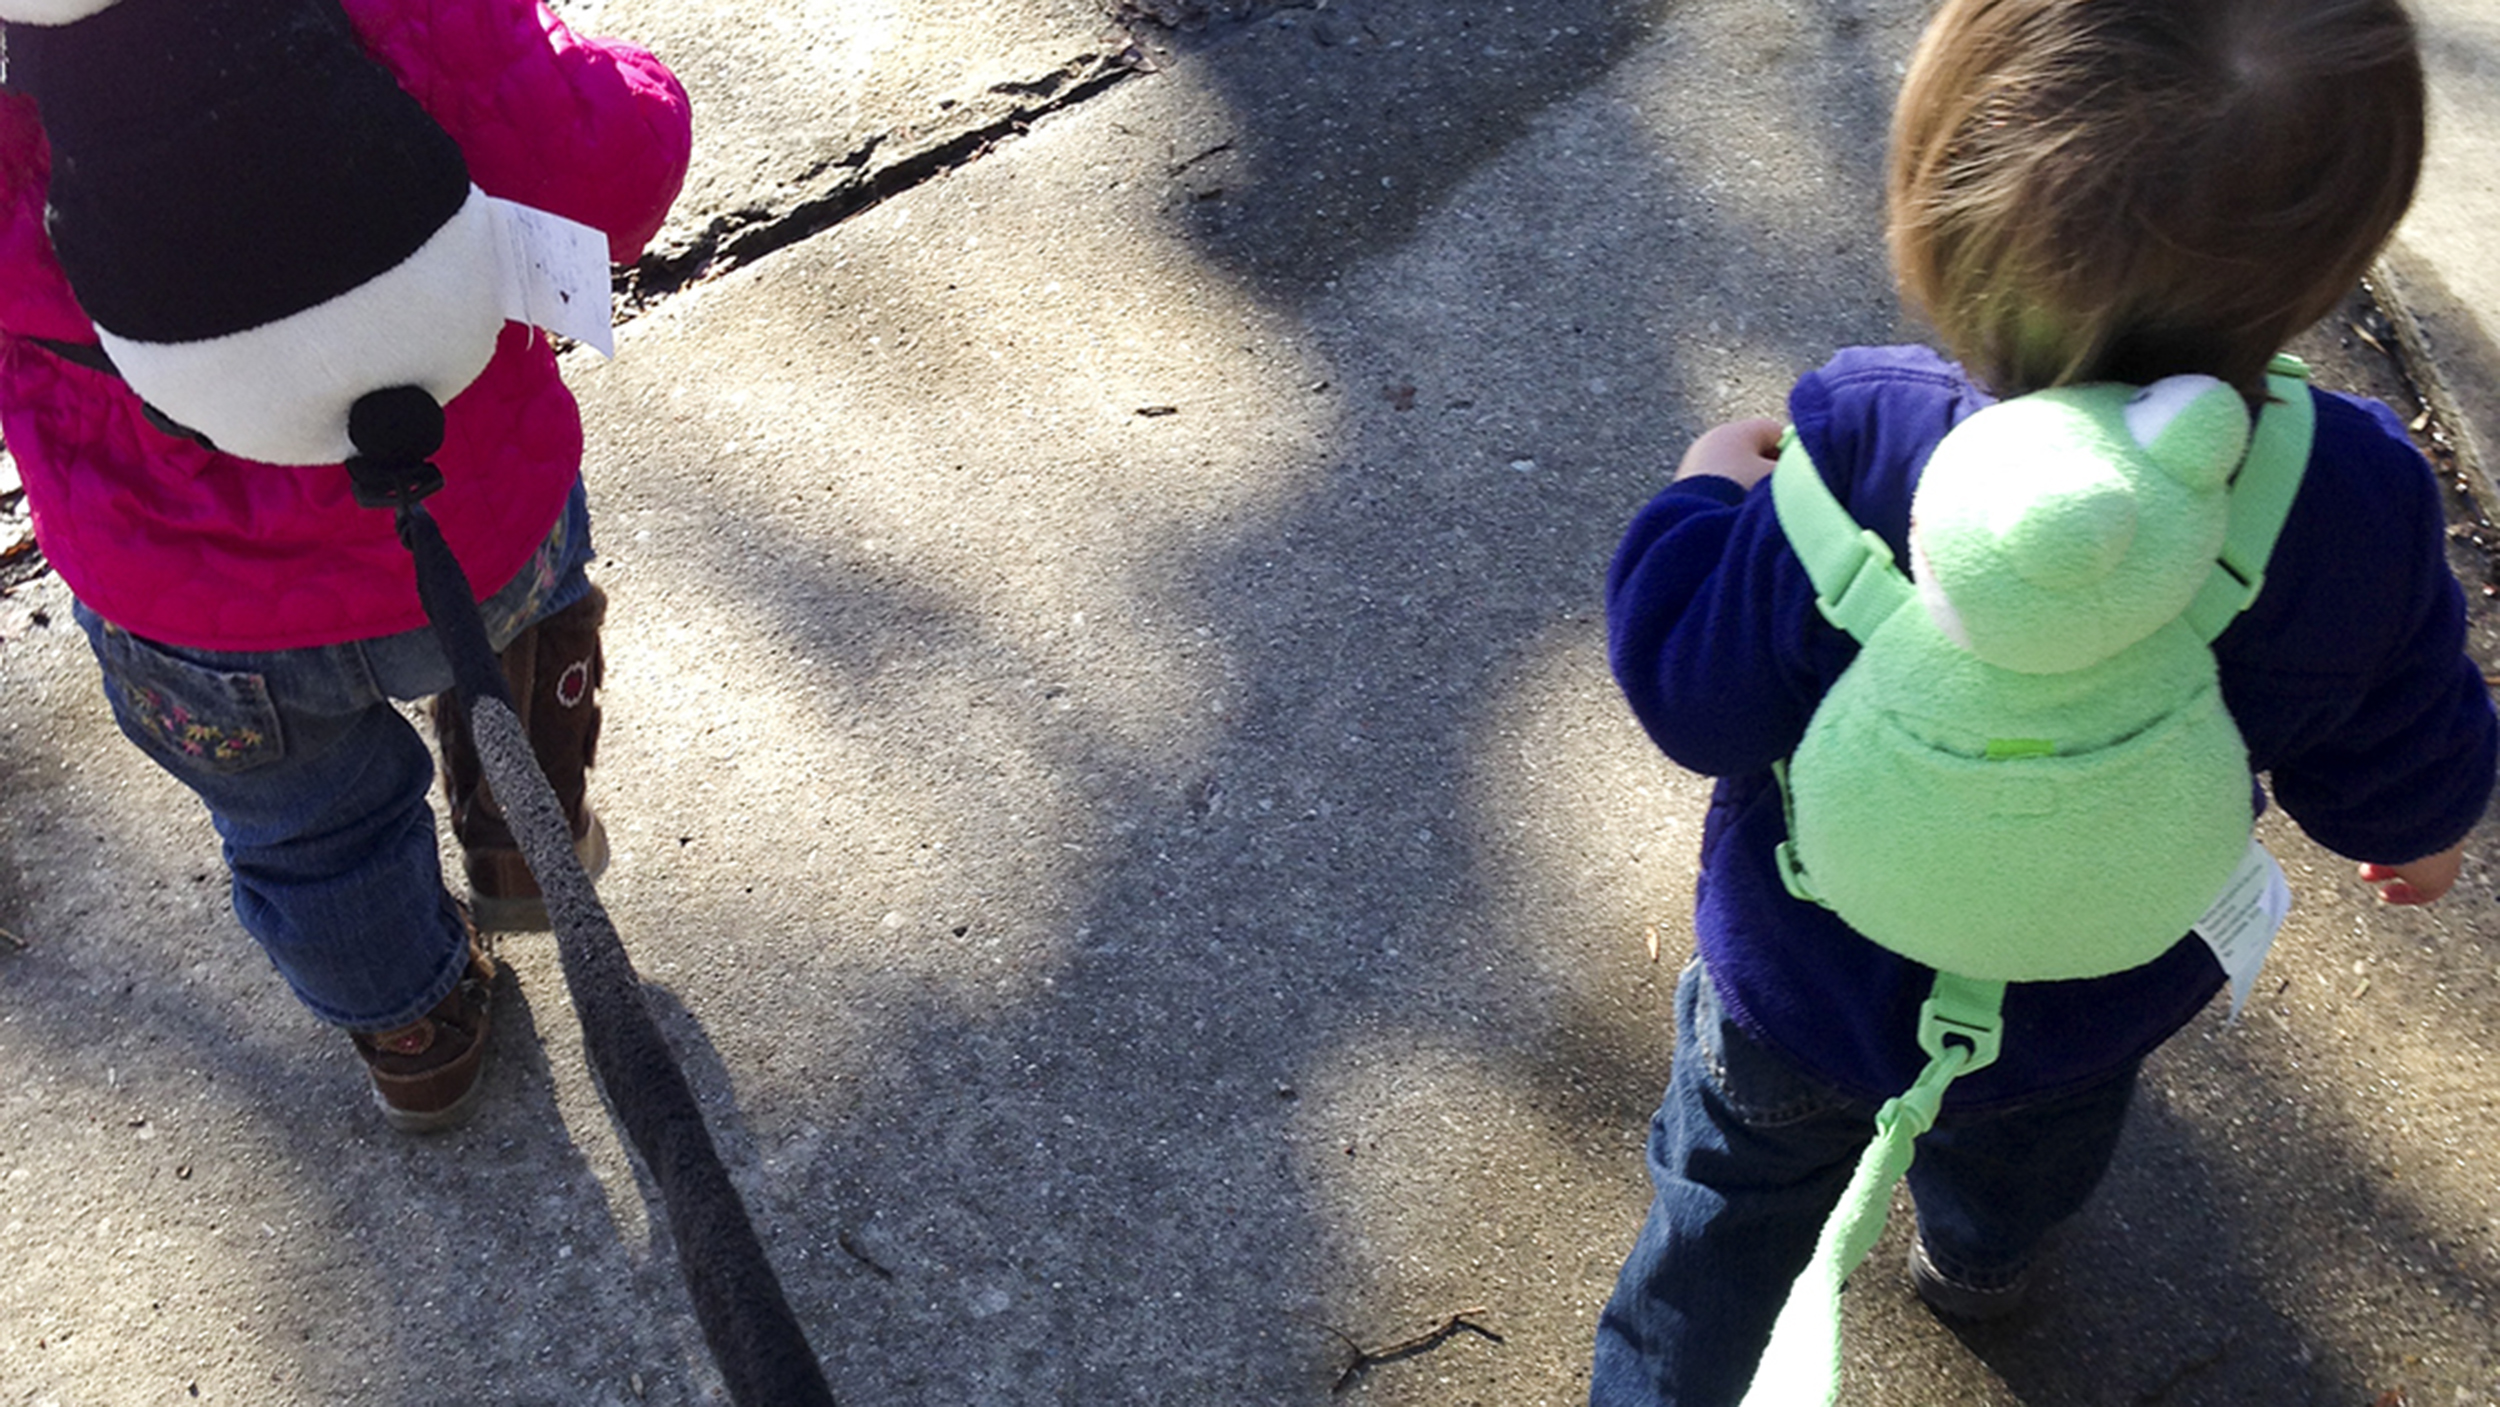 Child Leashes Are They Helpful Or Humiliating